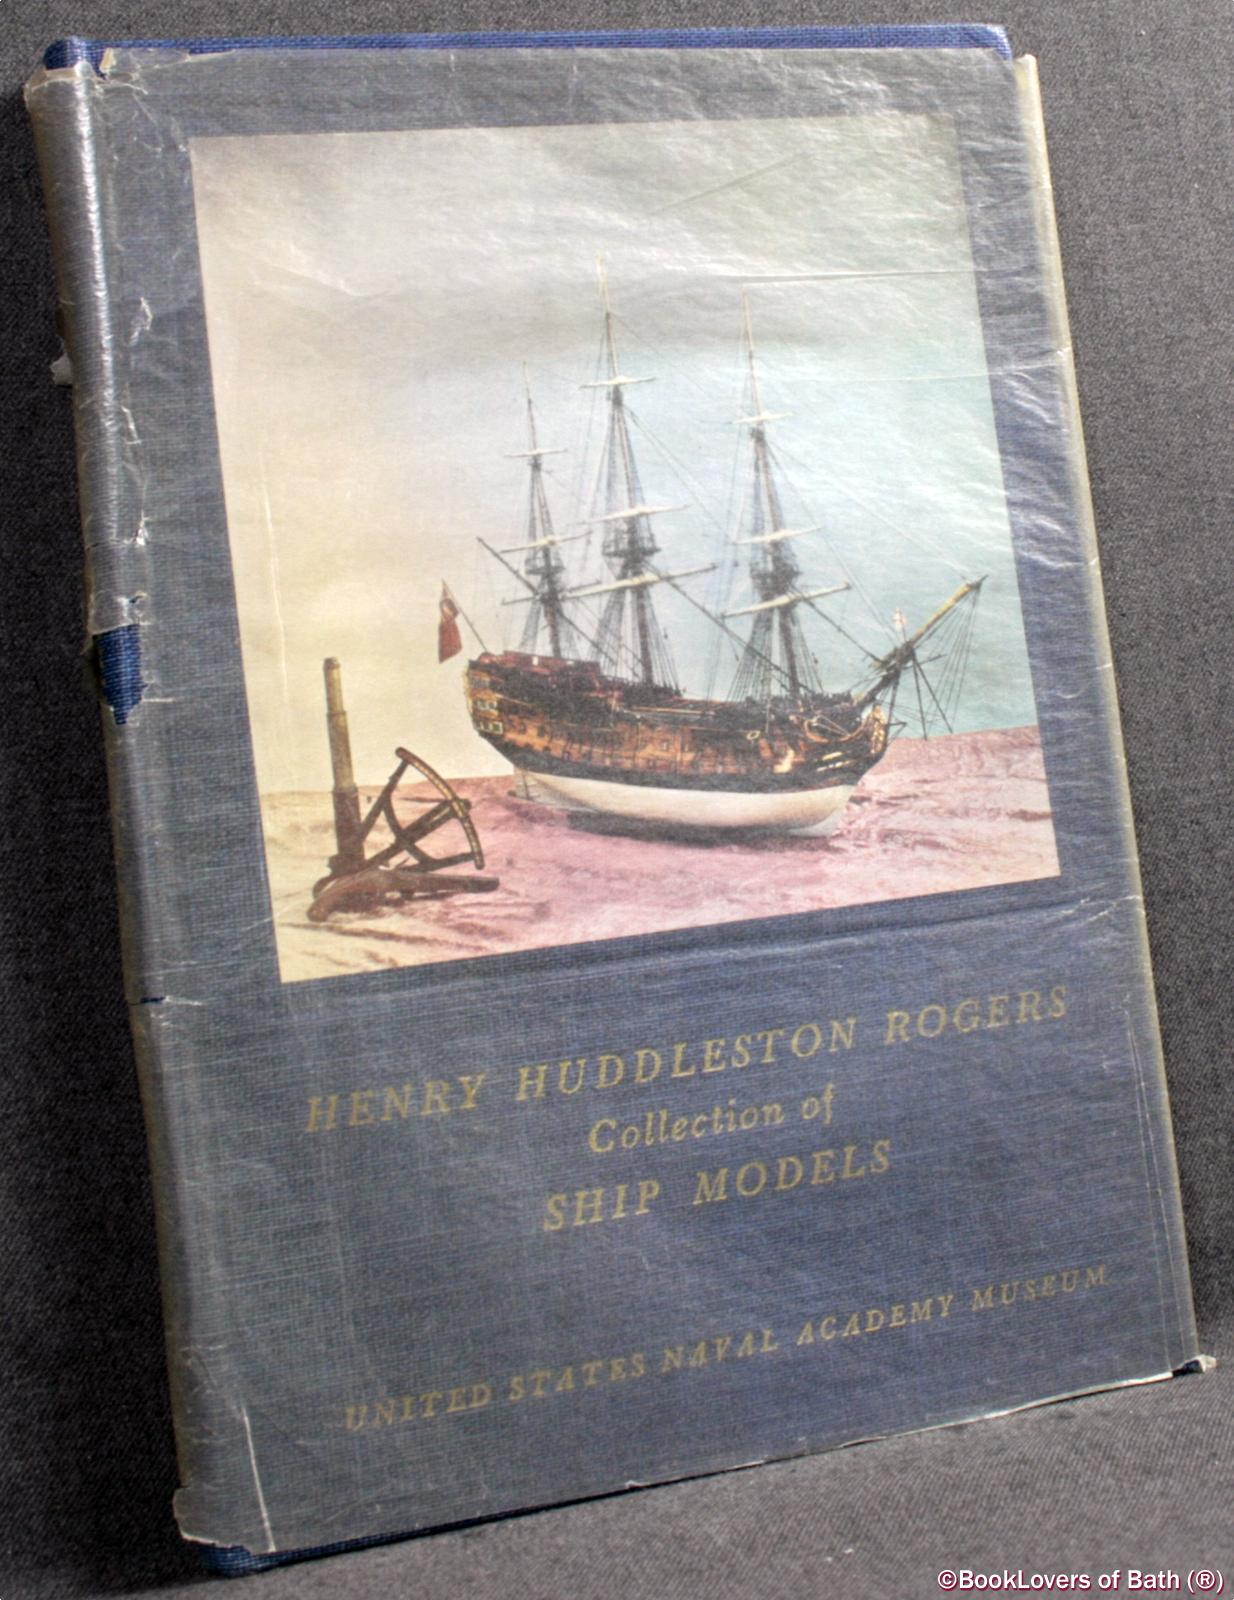 Catalogue of the Henry Huddleston Rogers Collection of Ship Models - Anon.